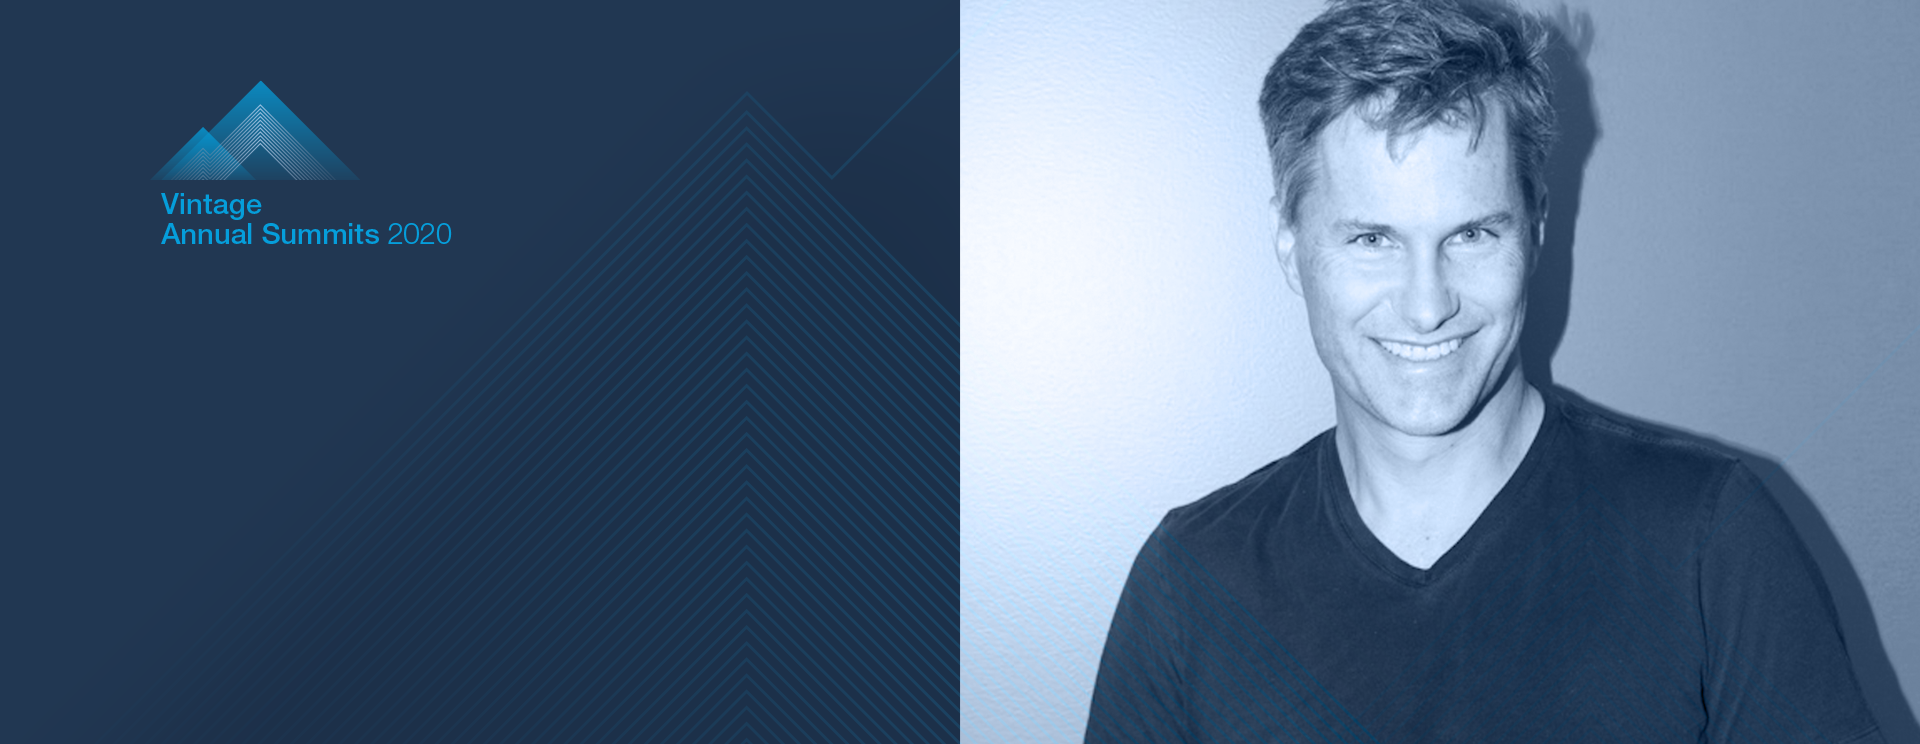 """When Covid-19 Kills Your Business: Pivoting Eventbrite"" – an interview with Kevin Hartz, former CEO, Chairman and Co-Founder of Eventbrite"